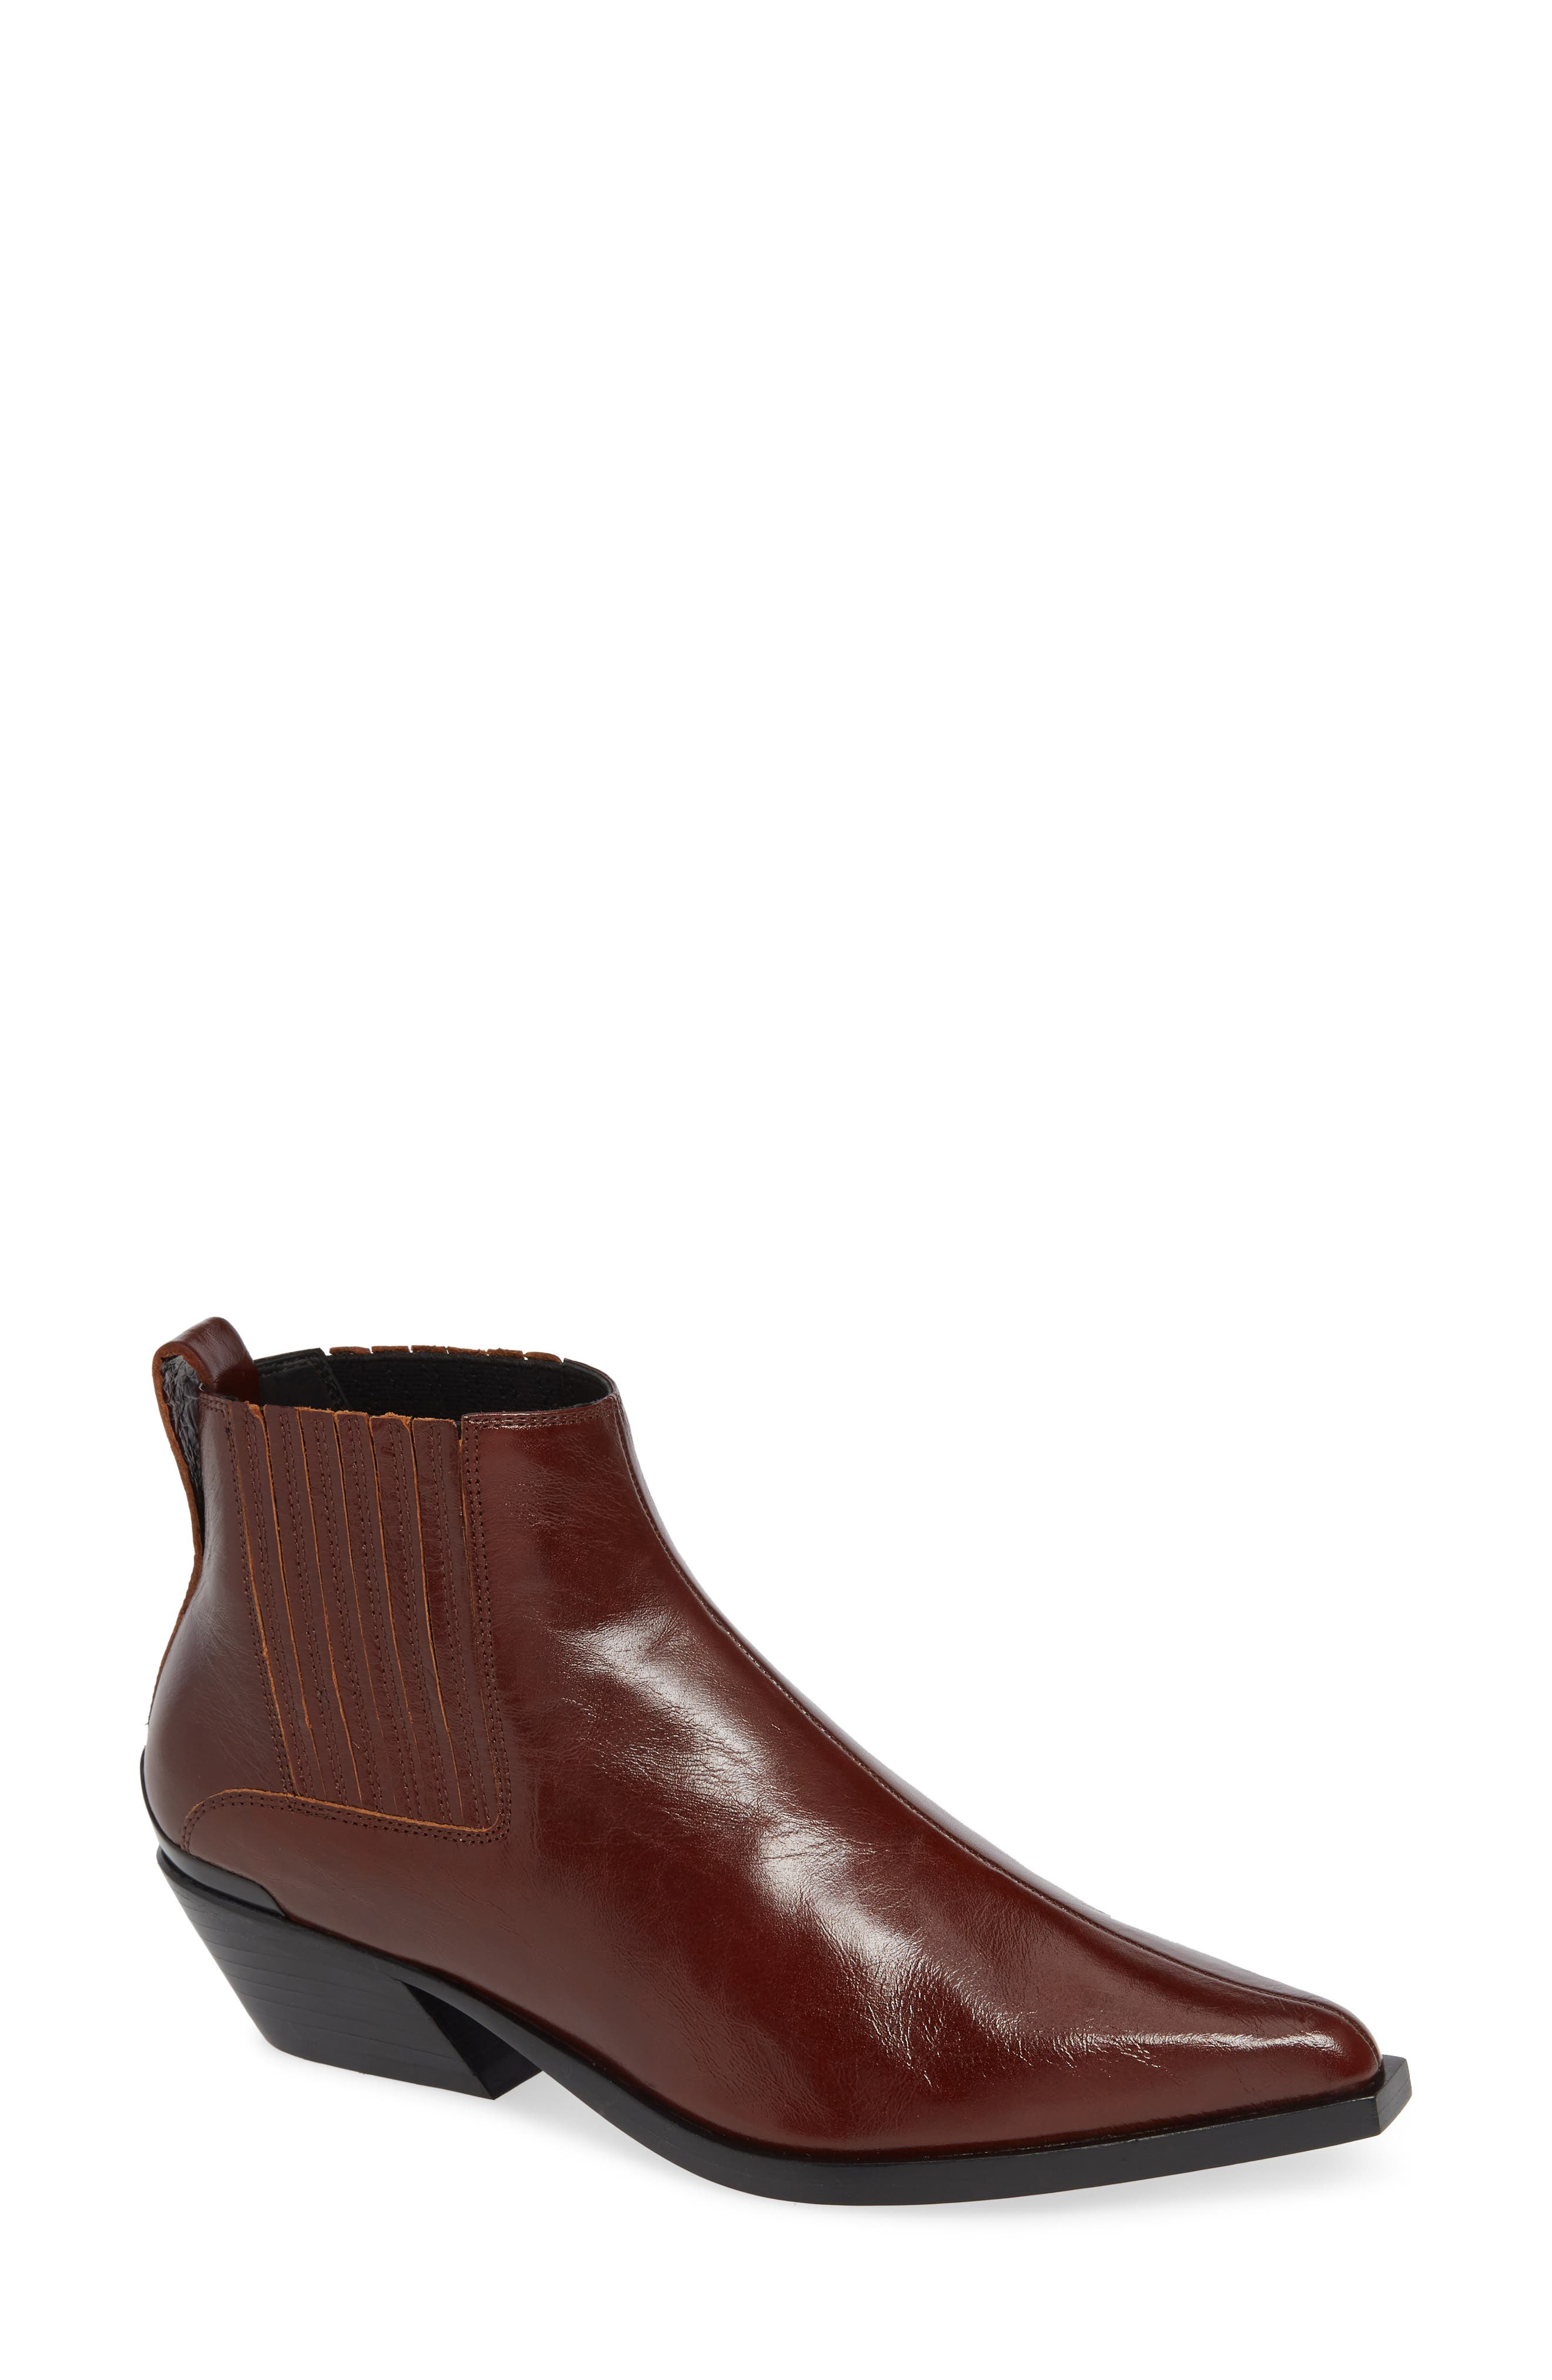 Rag And Bone Brown Leather Westin Boots in Mahogany